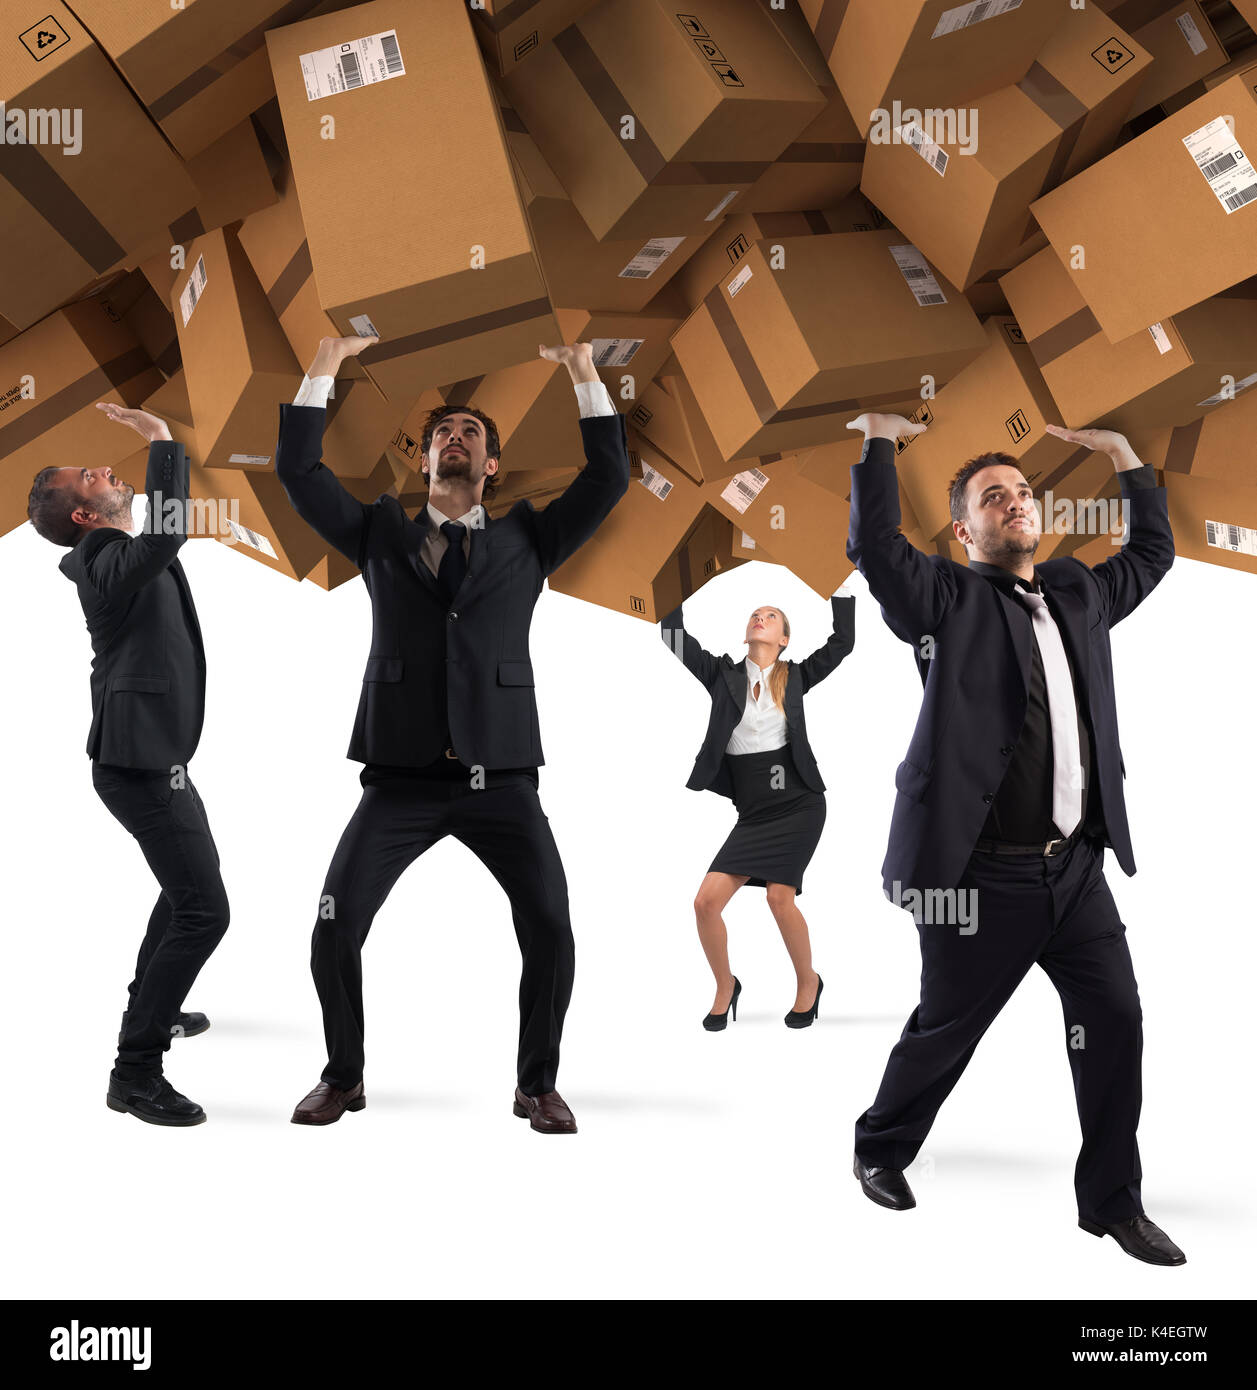 People buried by a stack of cardboard boxes. Concept of internet shopping addiction - Stock Image